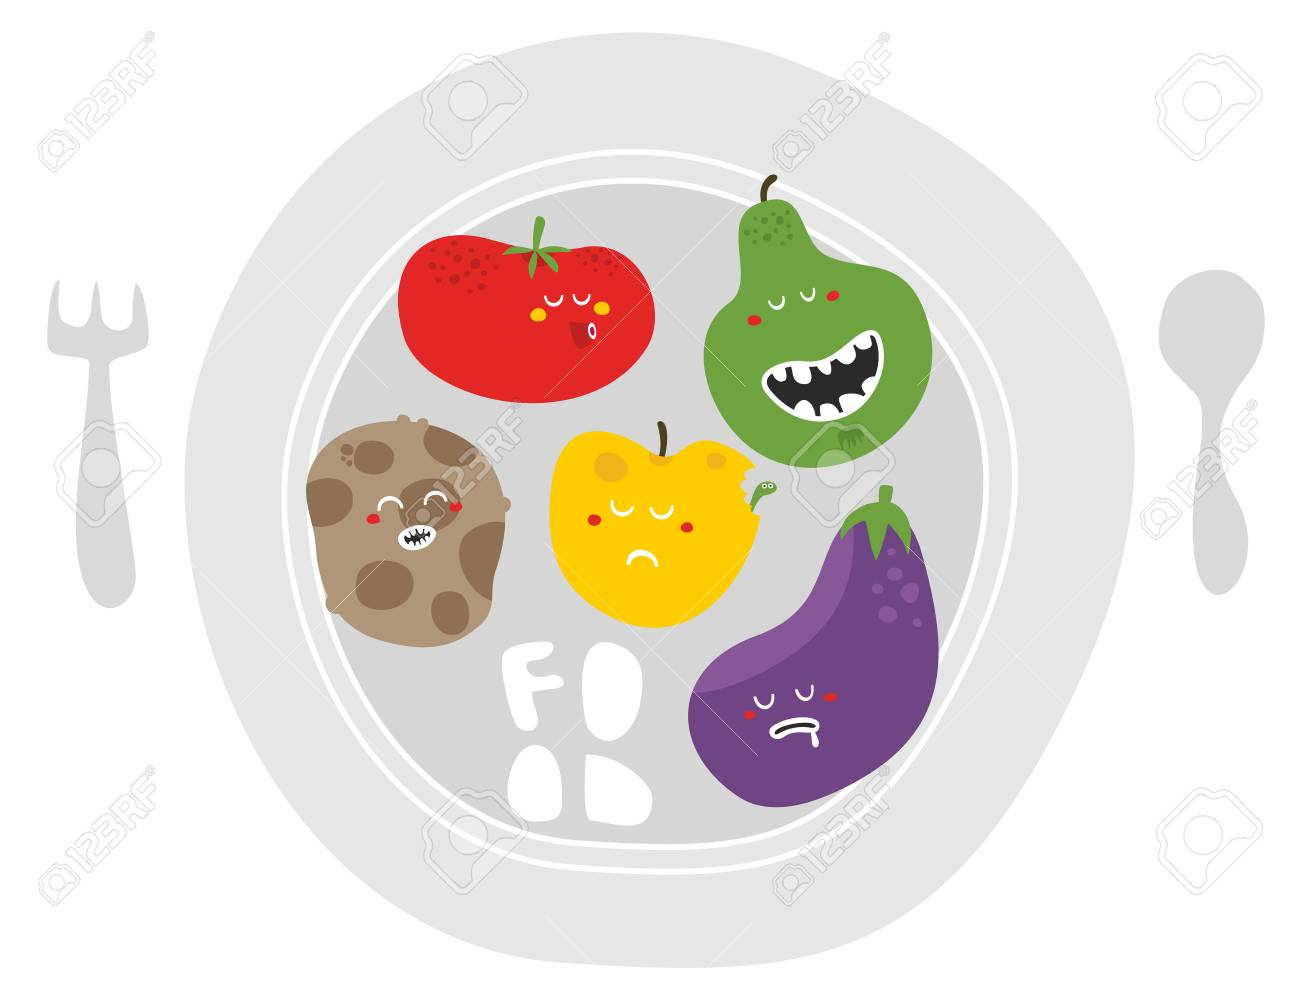 Crazy fruits and vegetables on the plate. Vector illustration. Stock Illustration - 26796269